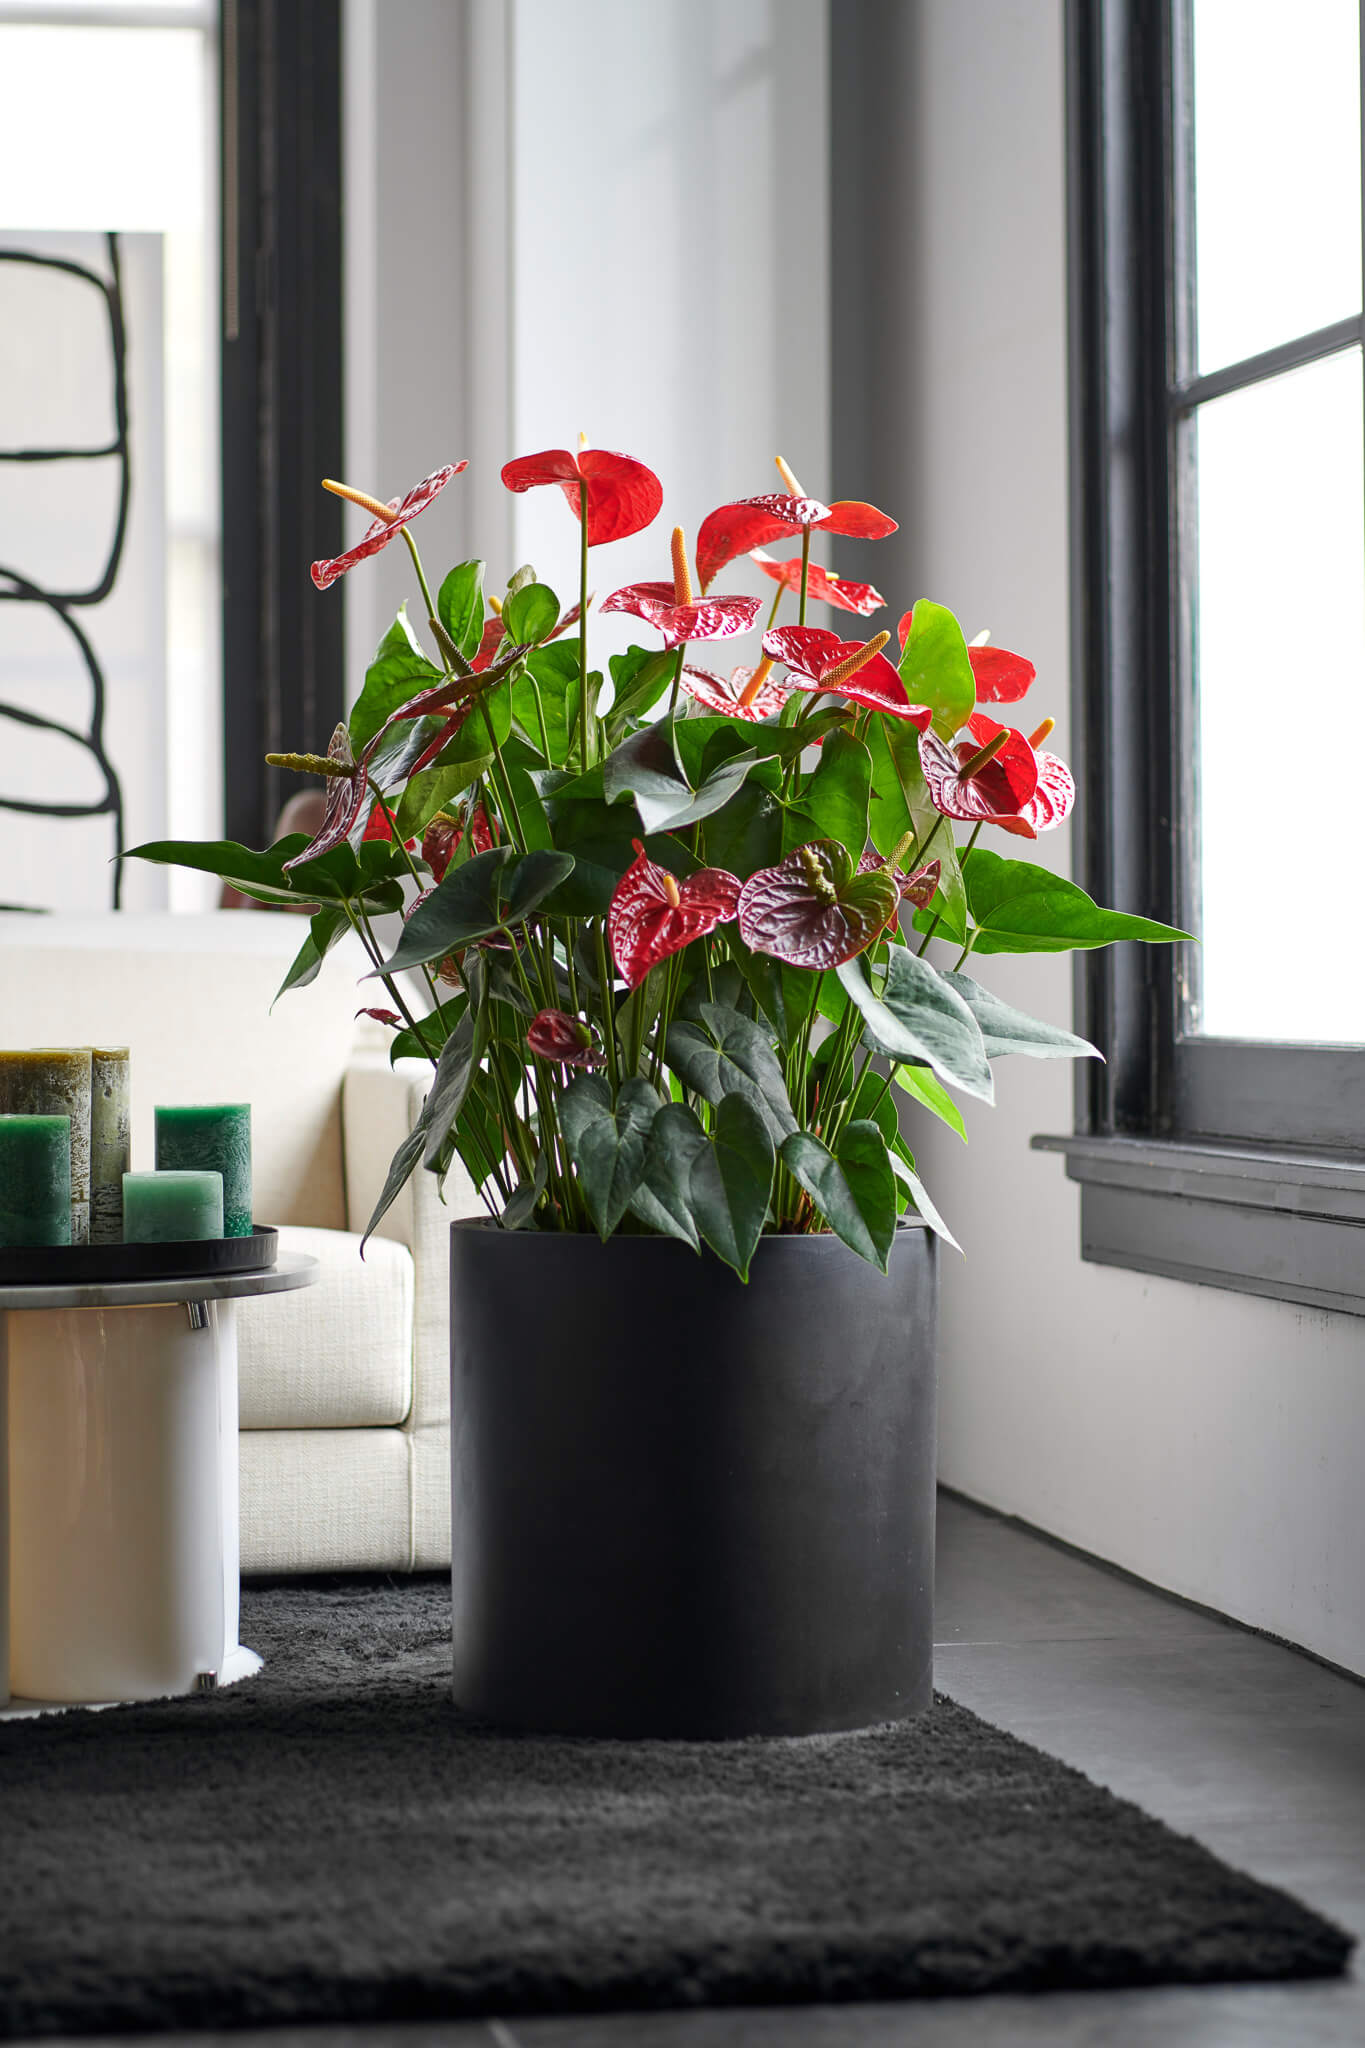 Dag kerstboom, hallo anthurium kamerplant!